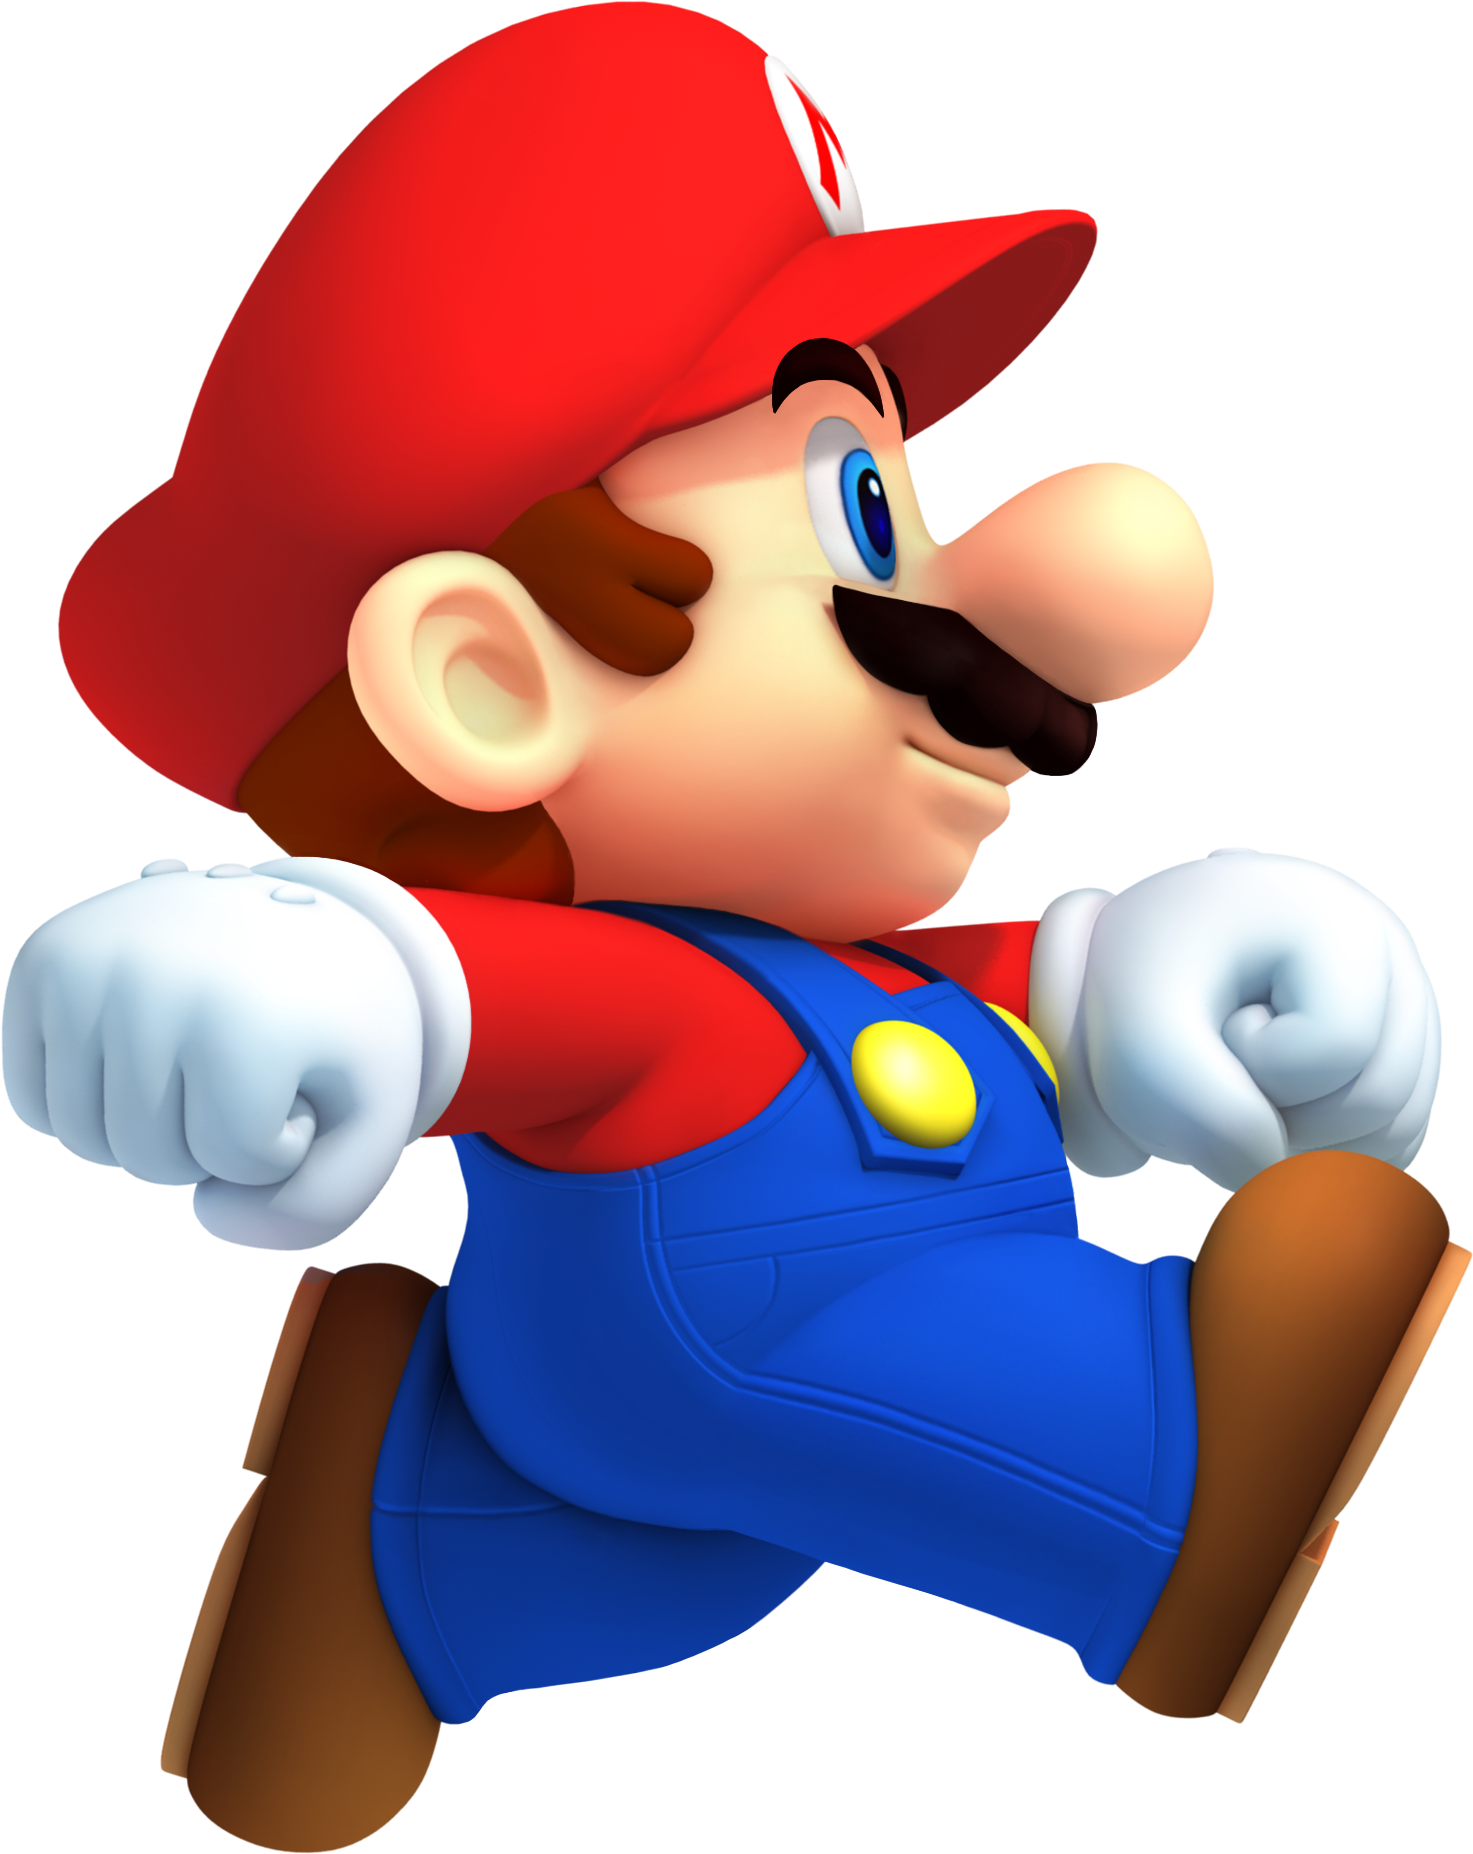 Images png. Download mario free photo